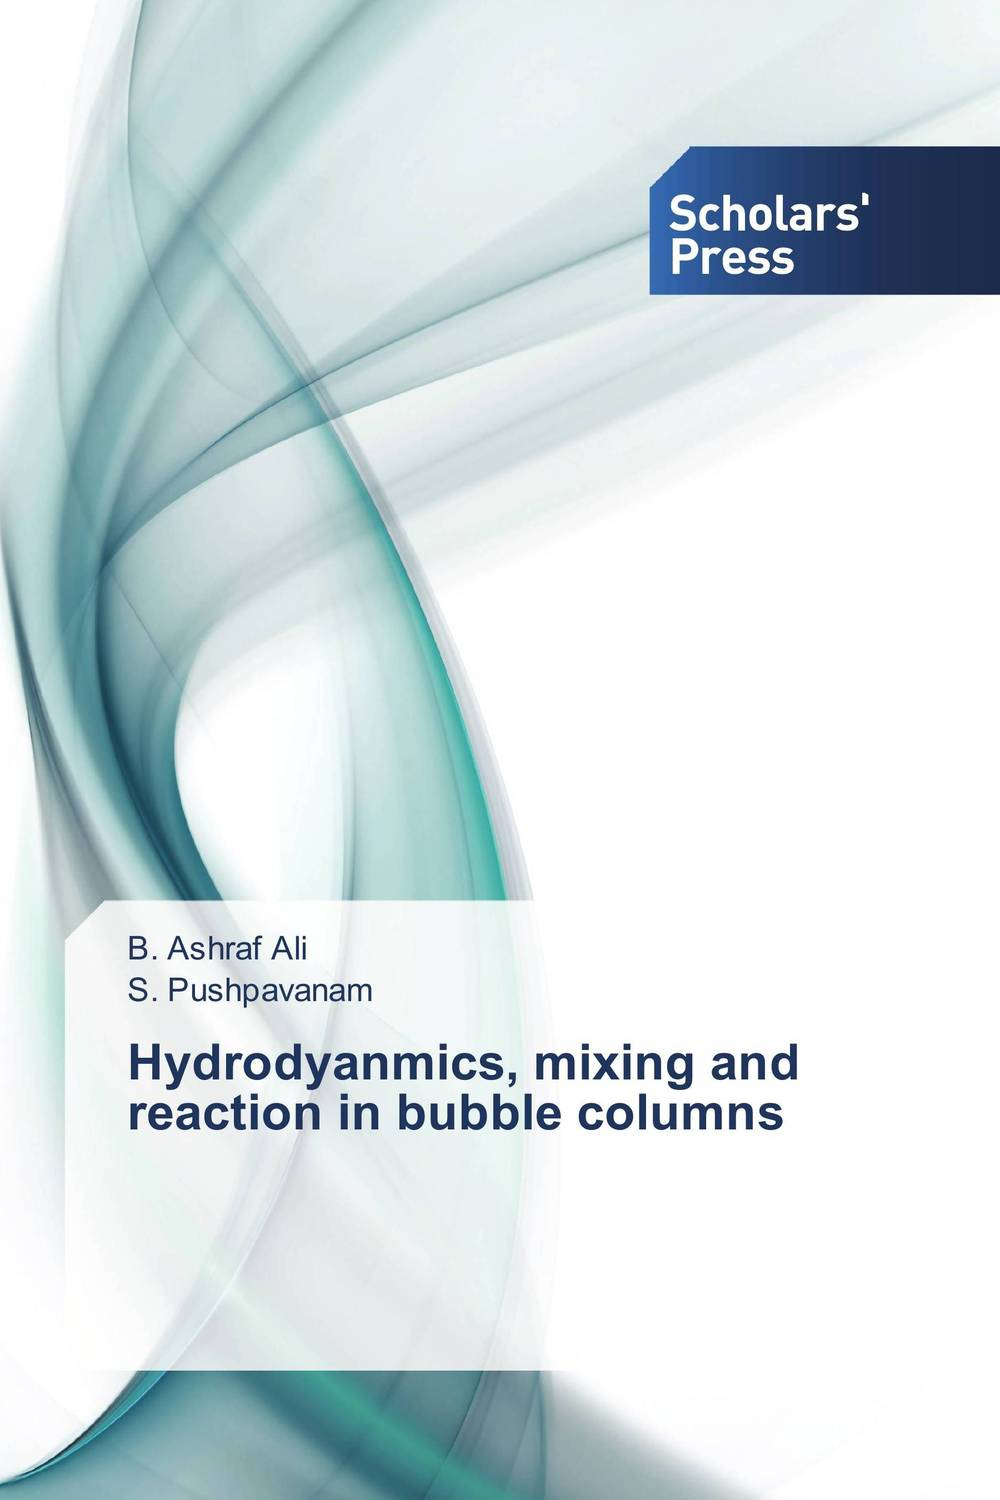 Hydrodyanmics, mixing and reaction in bubble columns fluids mixing and displacement in inclined geometries